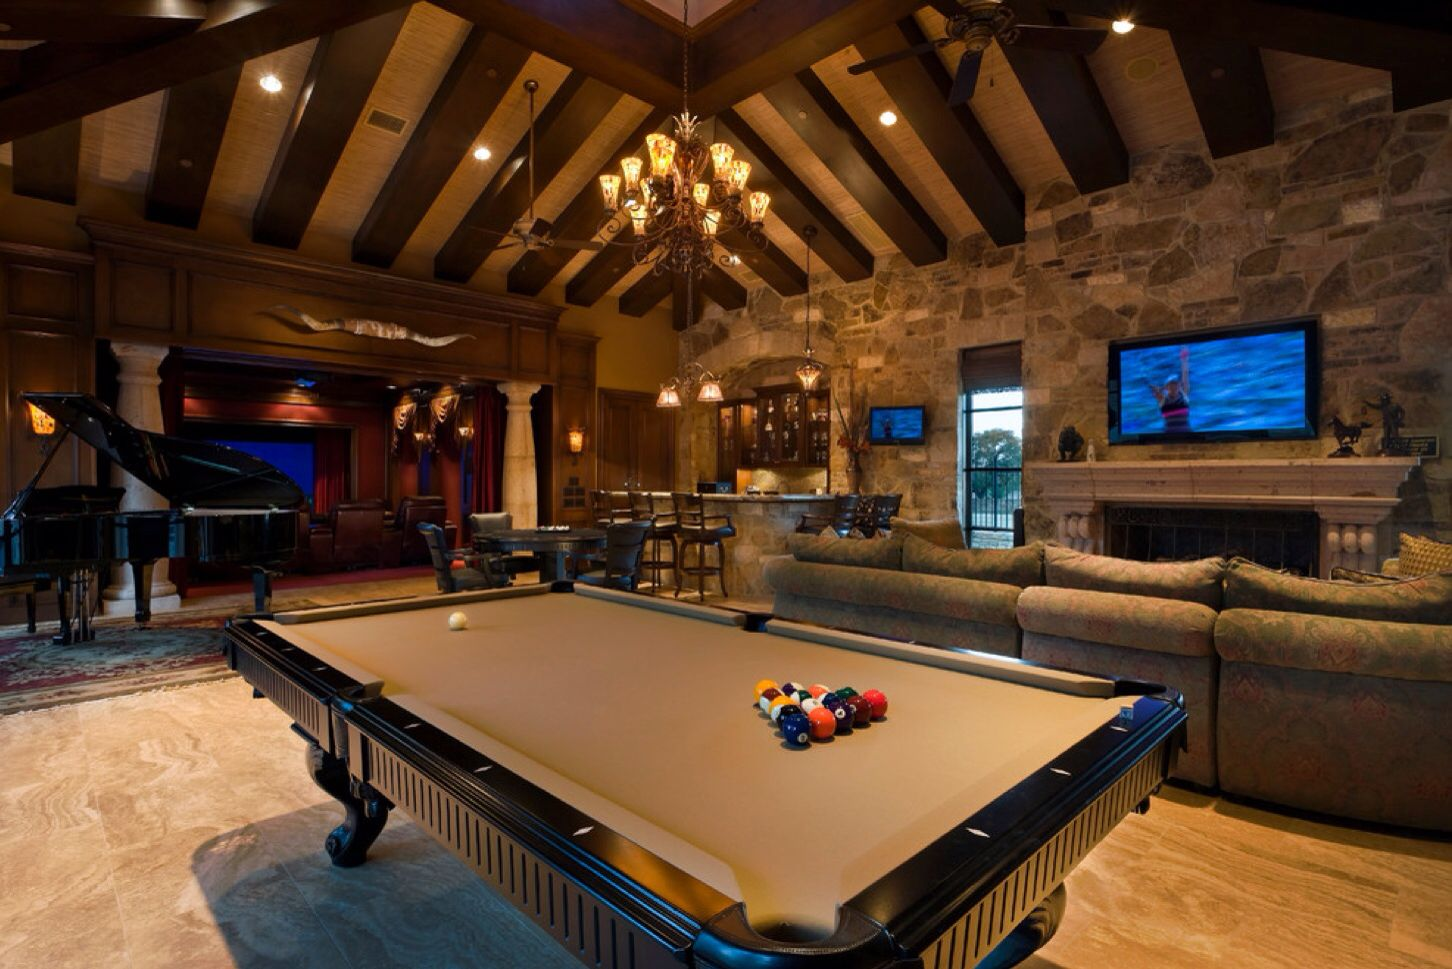 Game Room Pool Table New Room Over Garage Pinterest